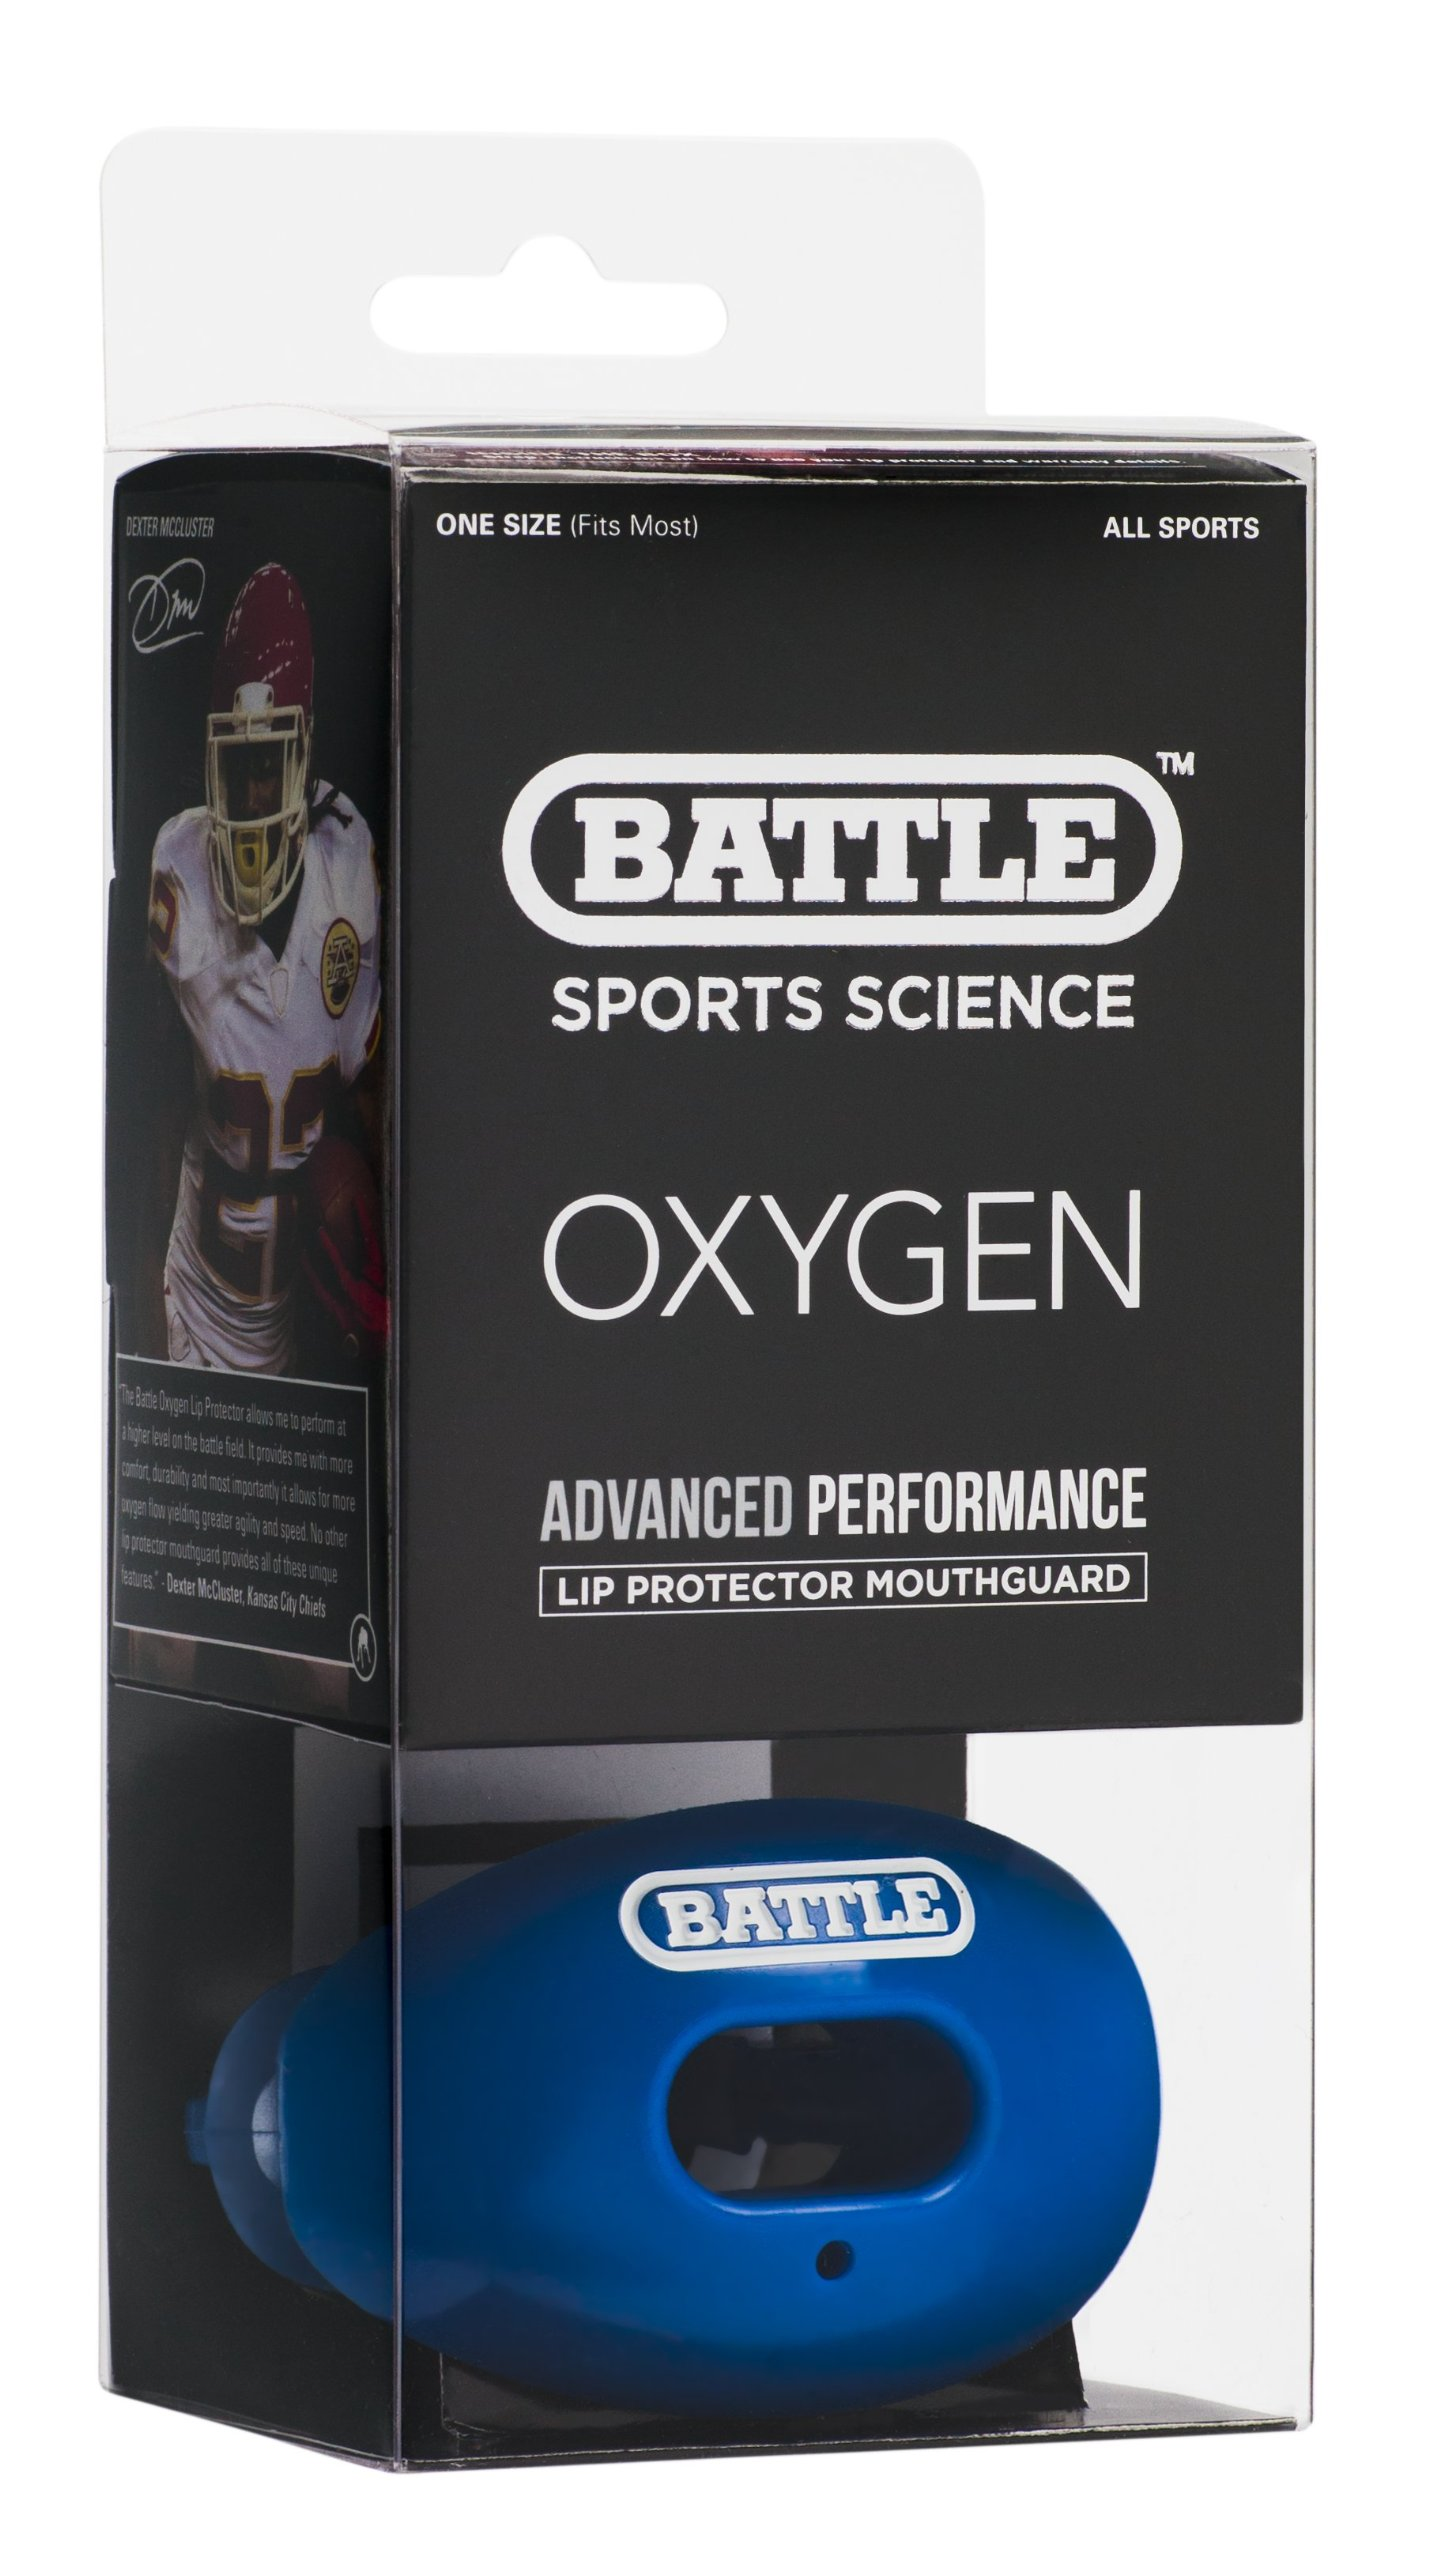 Battle Oxygen Lip Protector Mouthguard, Royal Blue by Battle